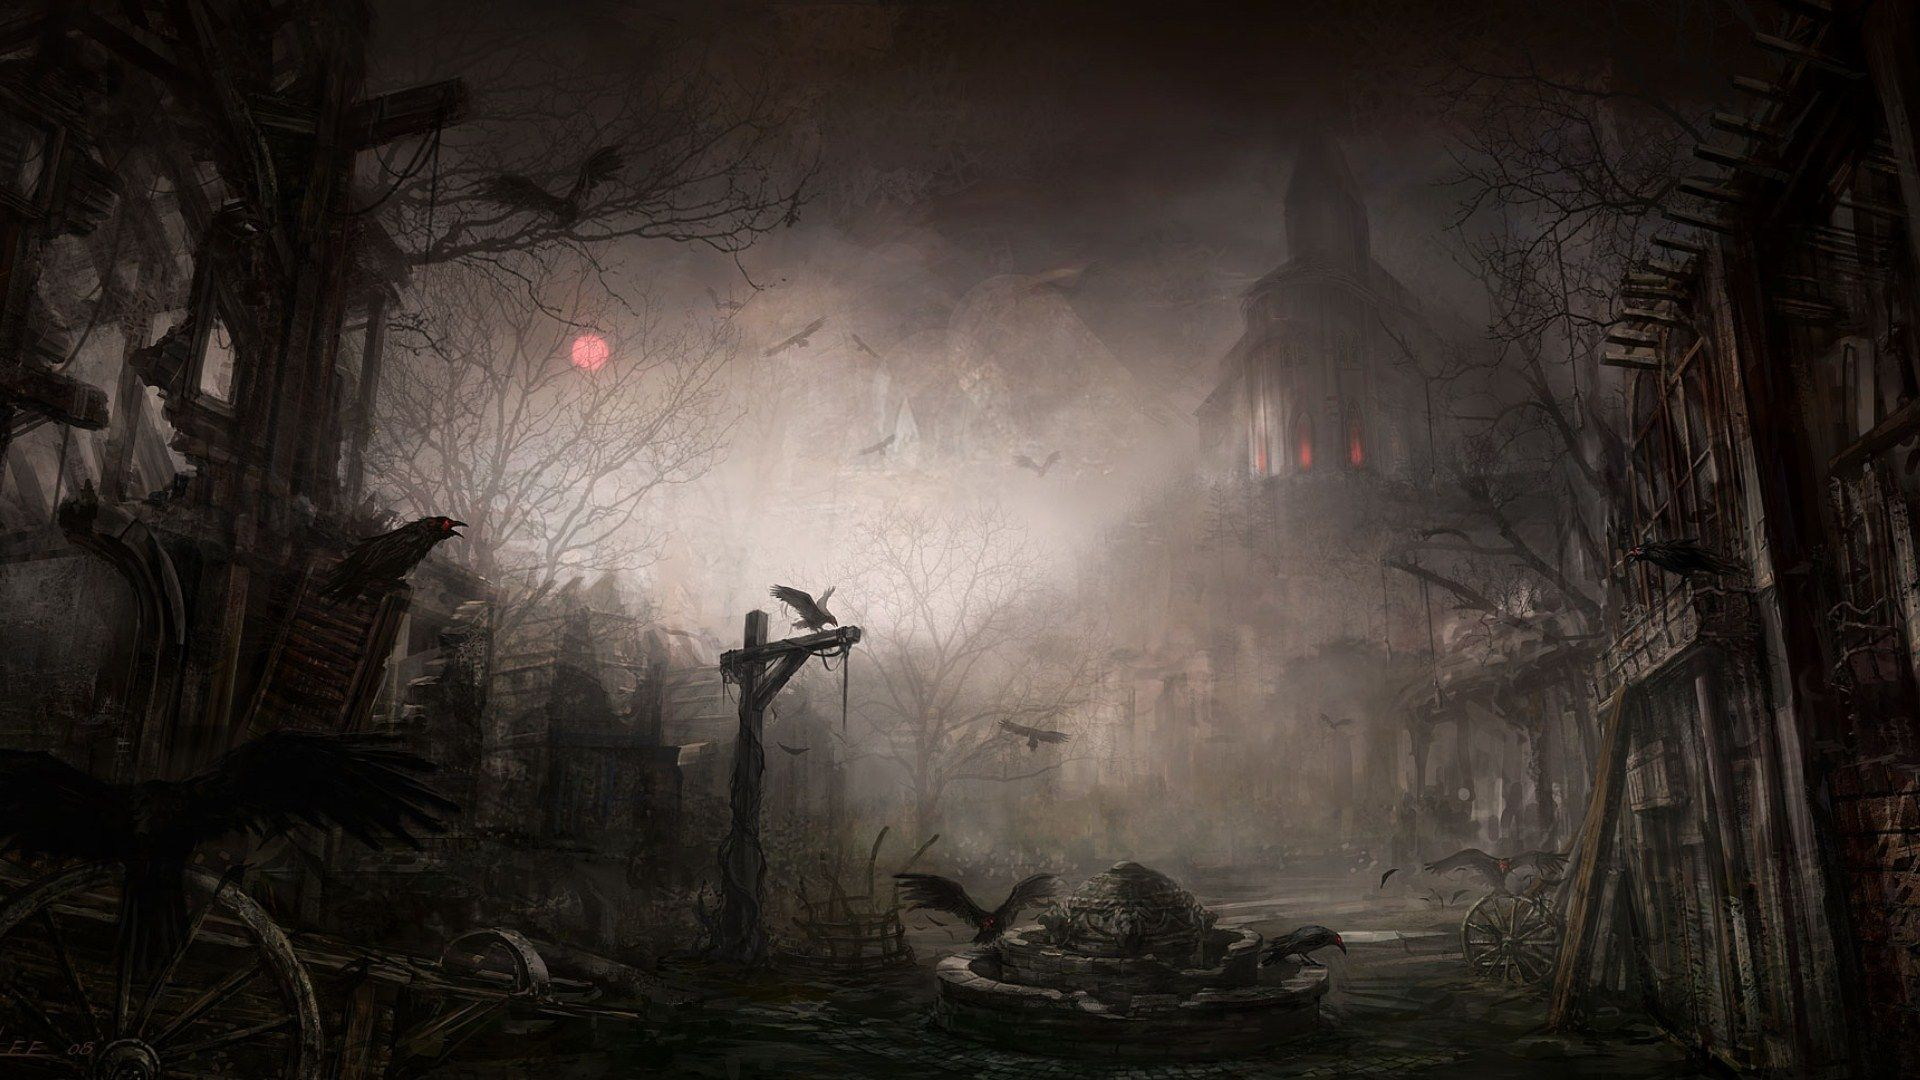 Download Creepy Landscape Wallpaper 1080p For Iphone Pc Desktop Android Or Mac Desktop Hd Gothic Wallpaper Scary Backgrounds Halloween Wallpaper